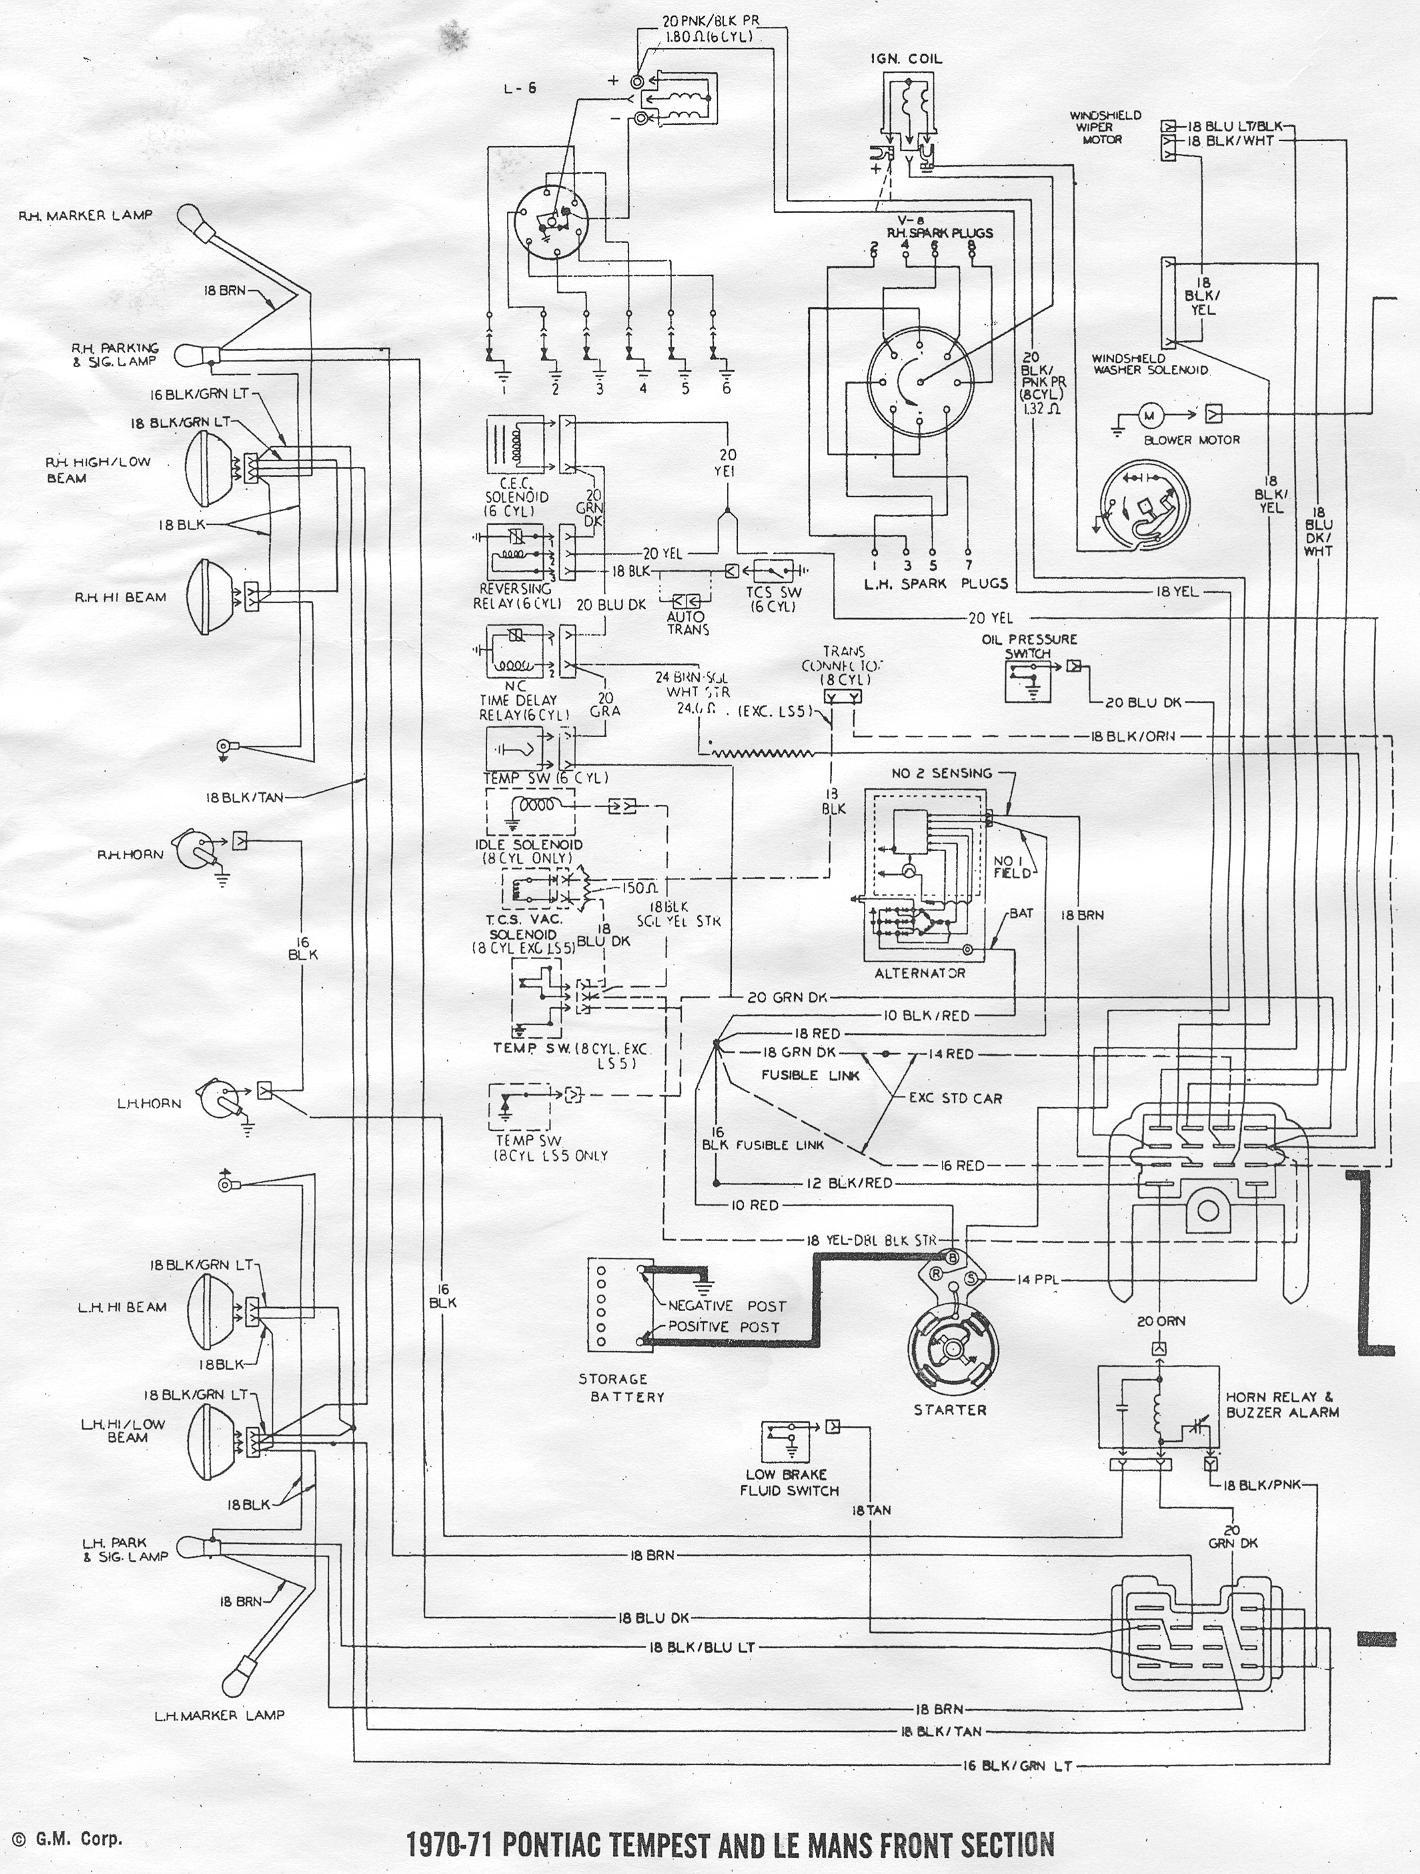 Diagram 1966 Gto Fuse Box Diagram Full Version Hd Quality Box Diagram Instadiagram Holofitness Fr